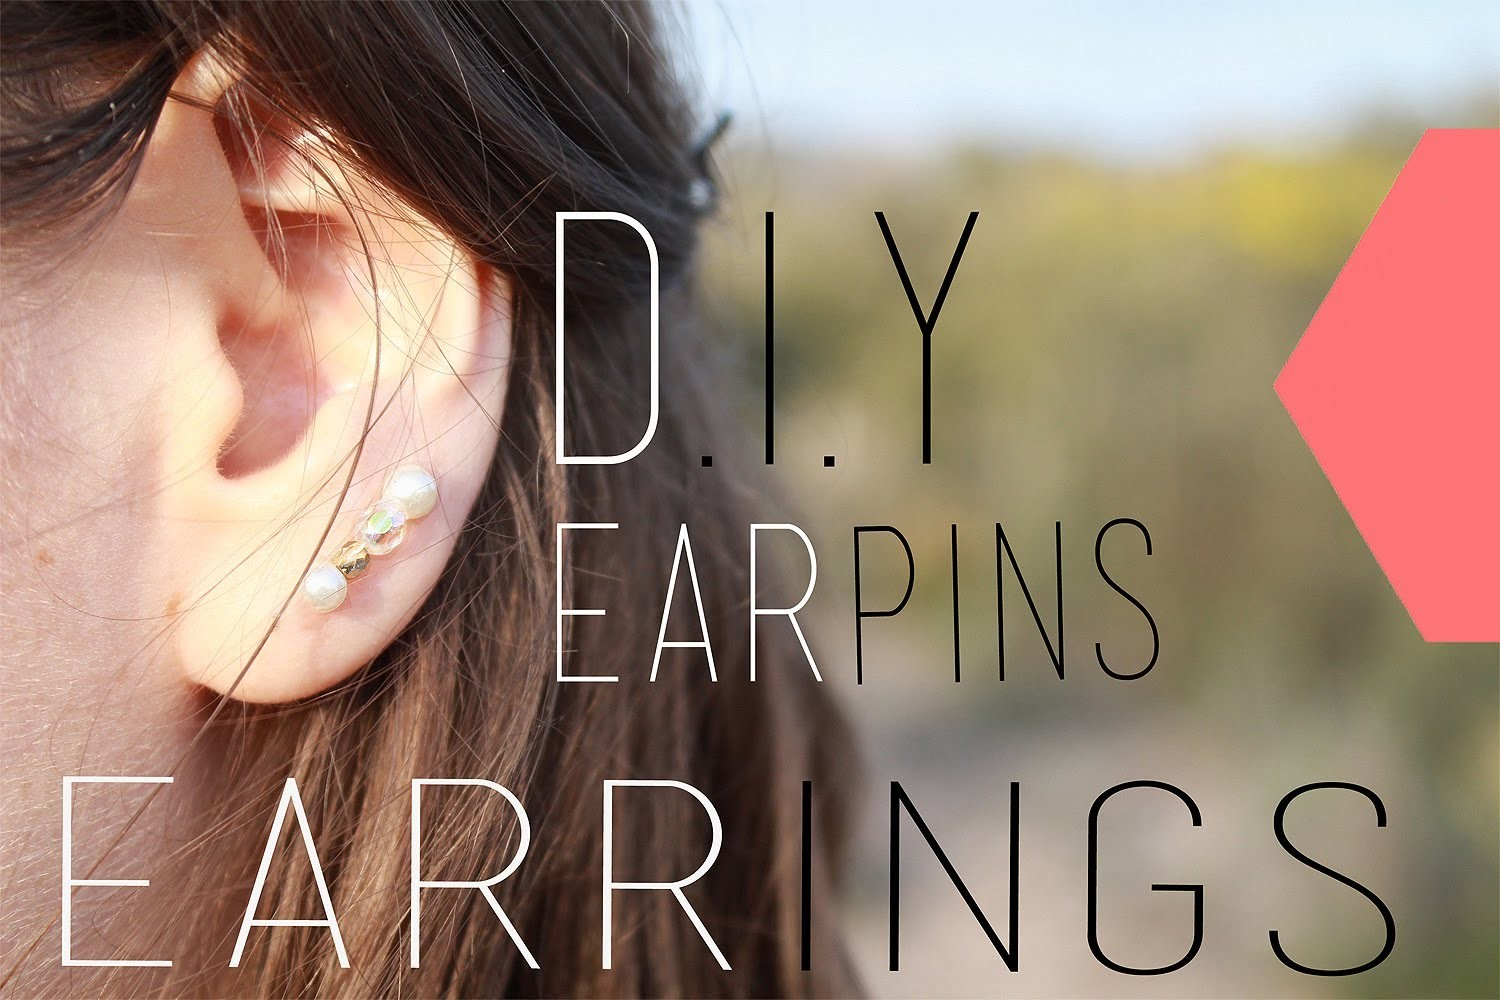 DIY : Boucles d'oreilles Ear Pins - Ear cuff Ear Pins Earrings (English Subs)